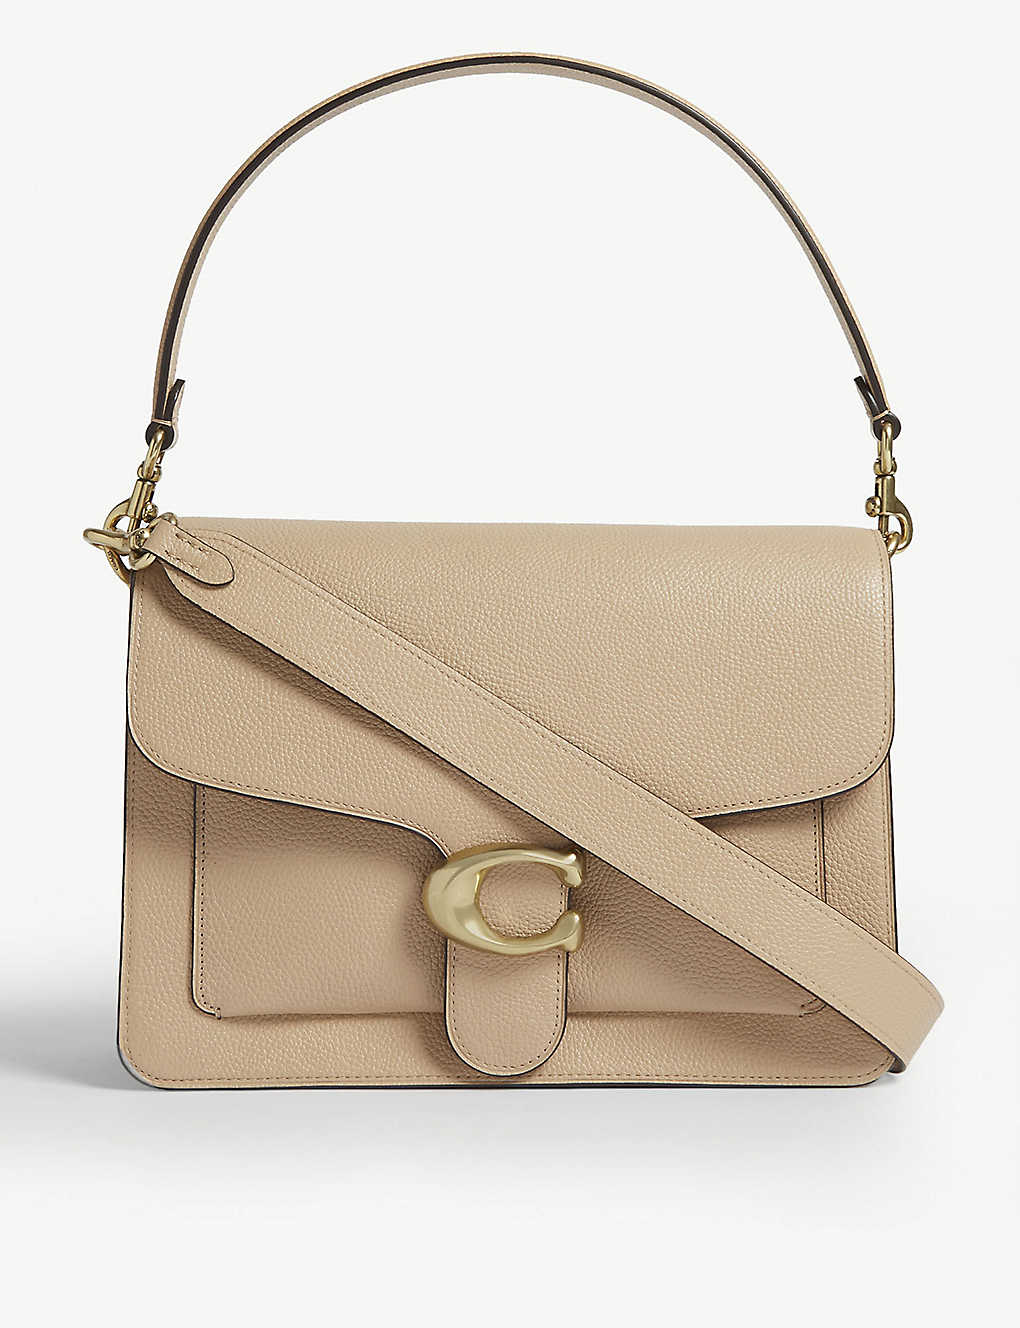 COACH: Tabby leather shoulder bag